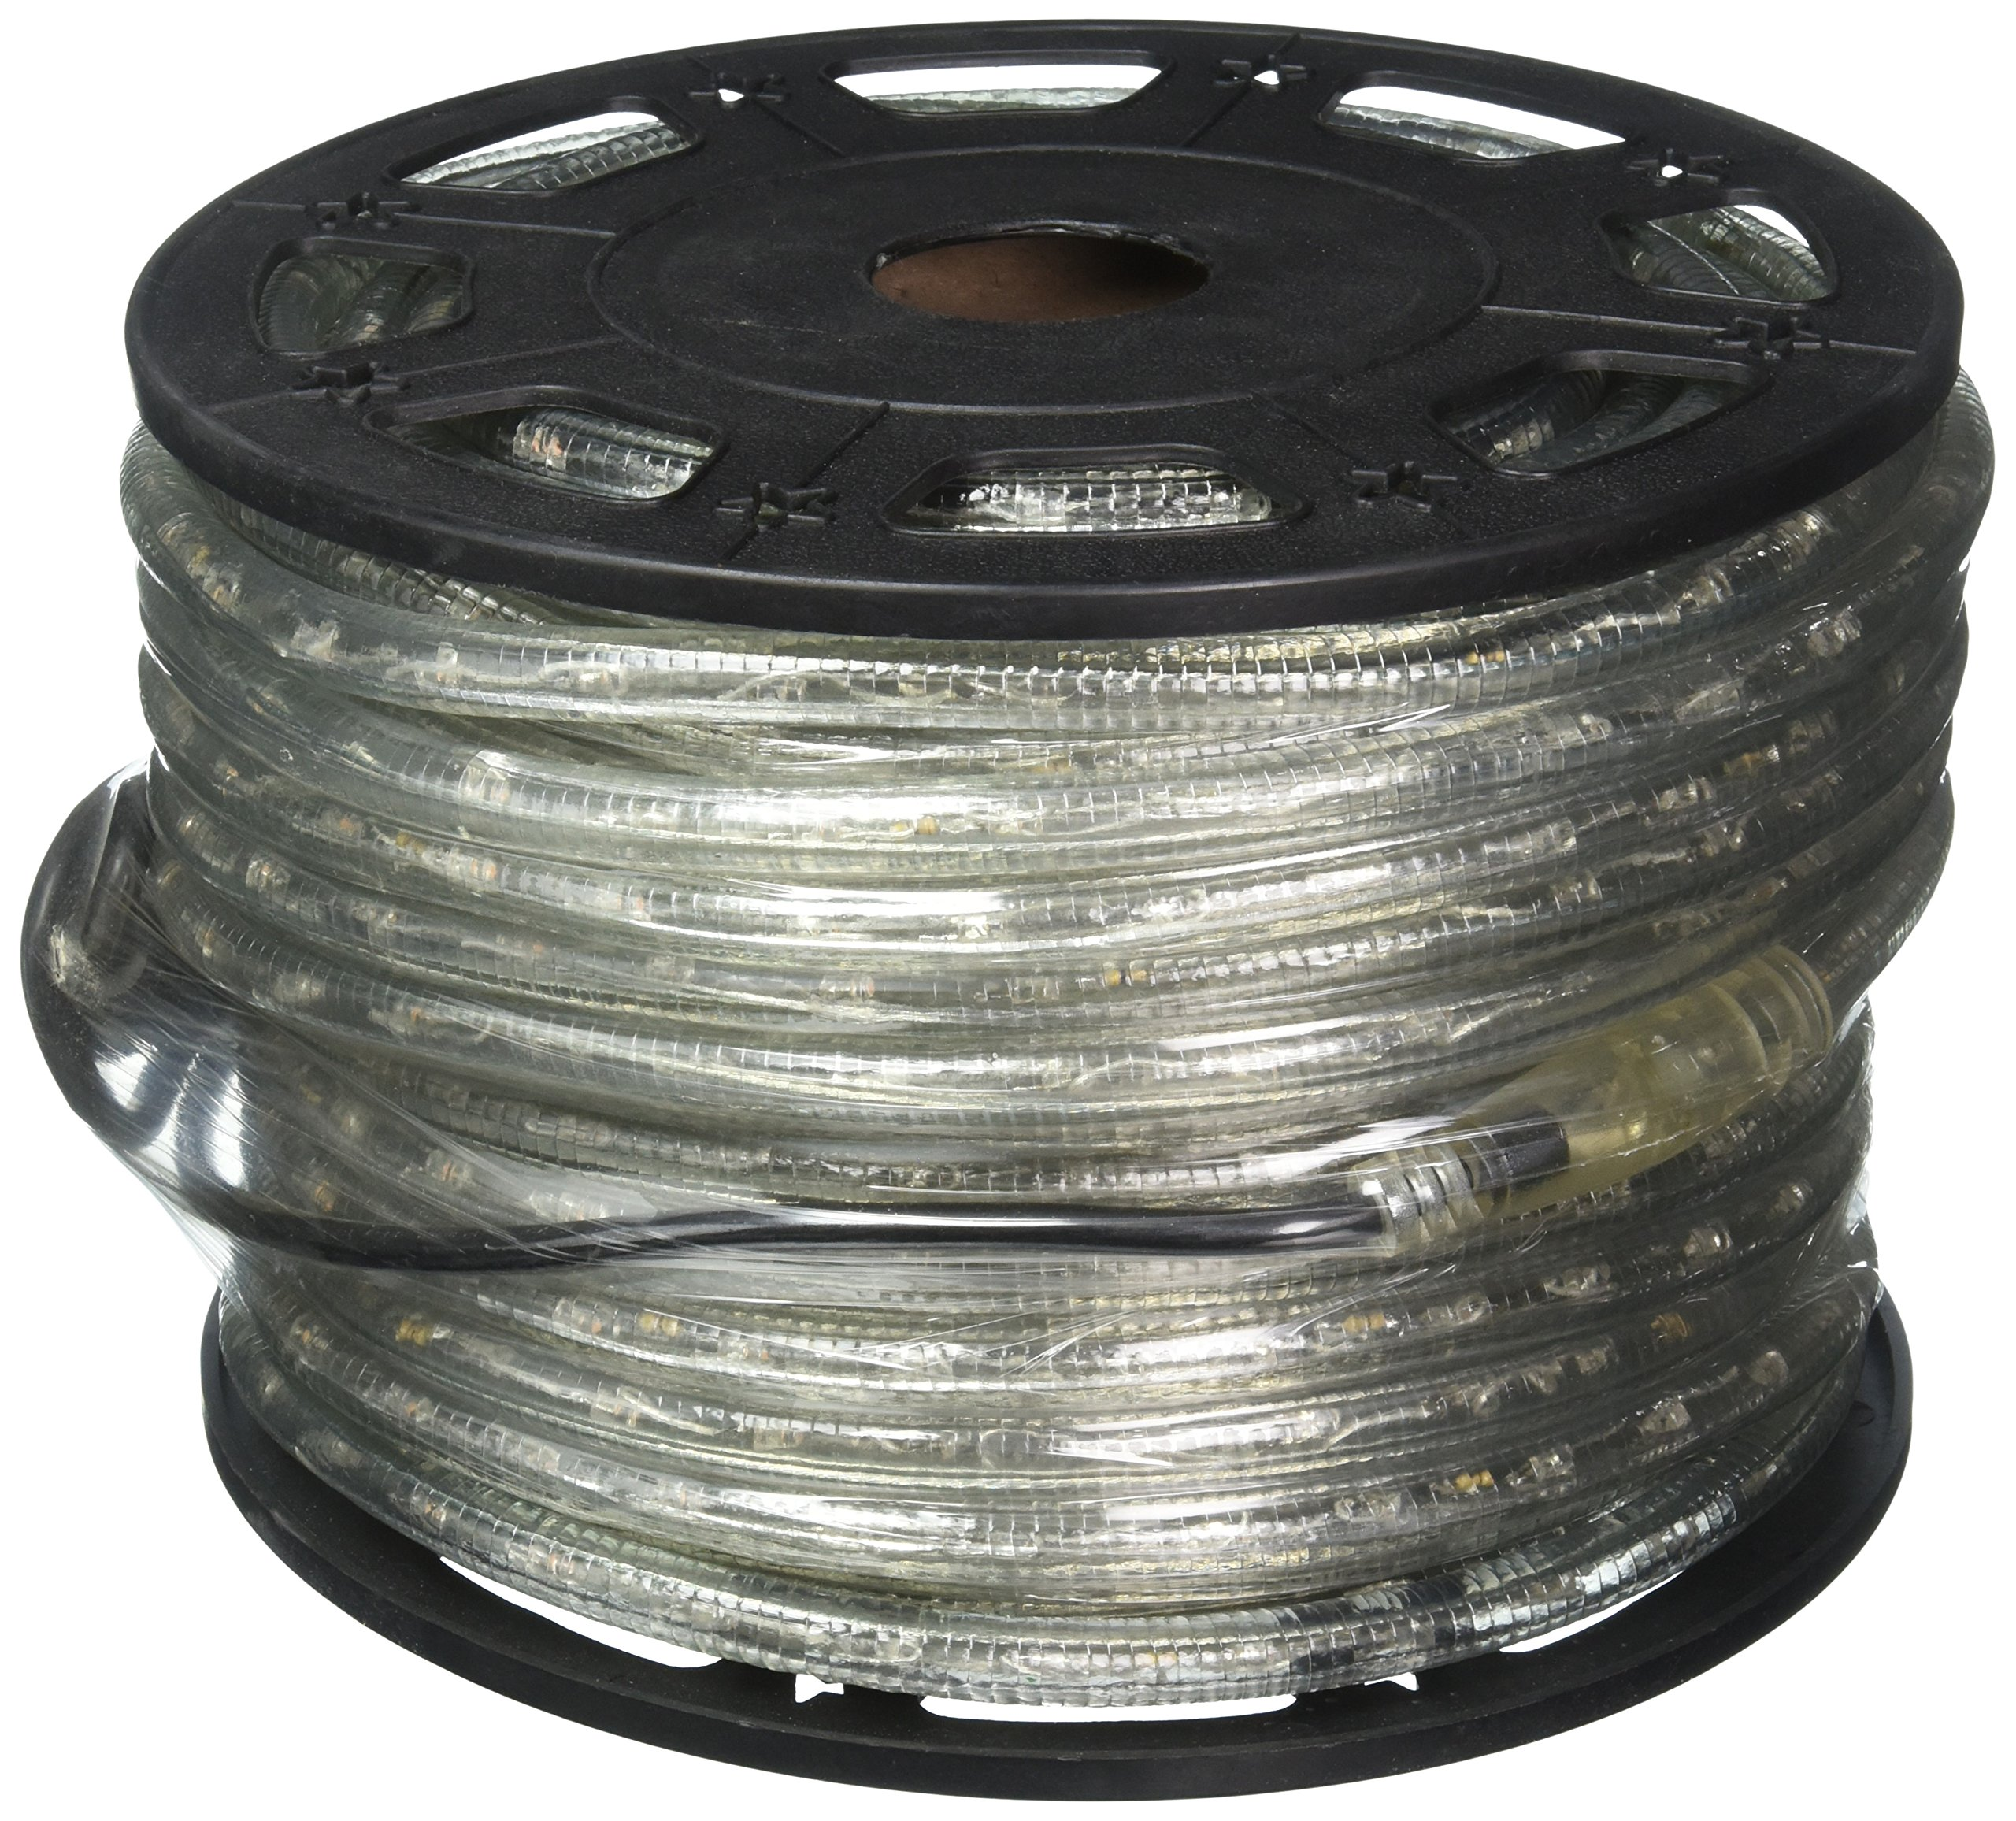 CBconcept 120VLR150FT-Pink 150-Feet 120V 2-Wire 1/2-Inch LED Rope Light with 1.0-Inch LED Spacing